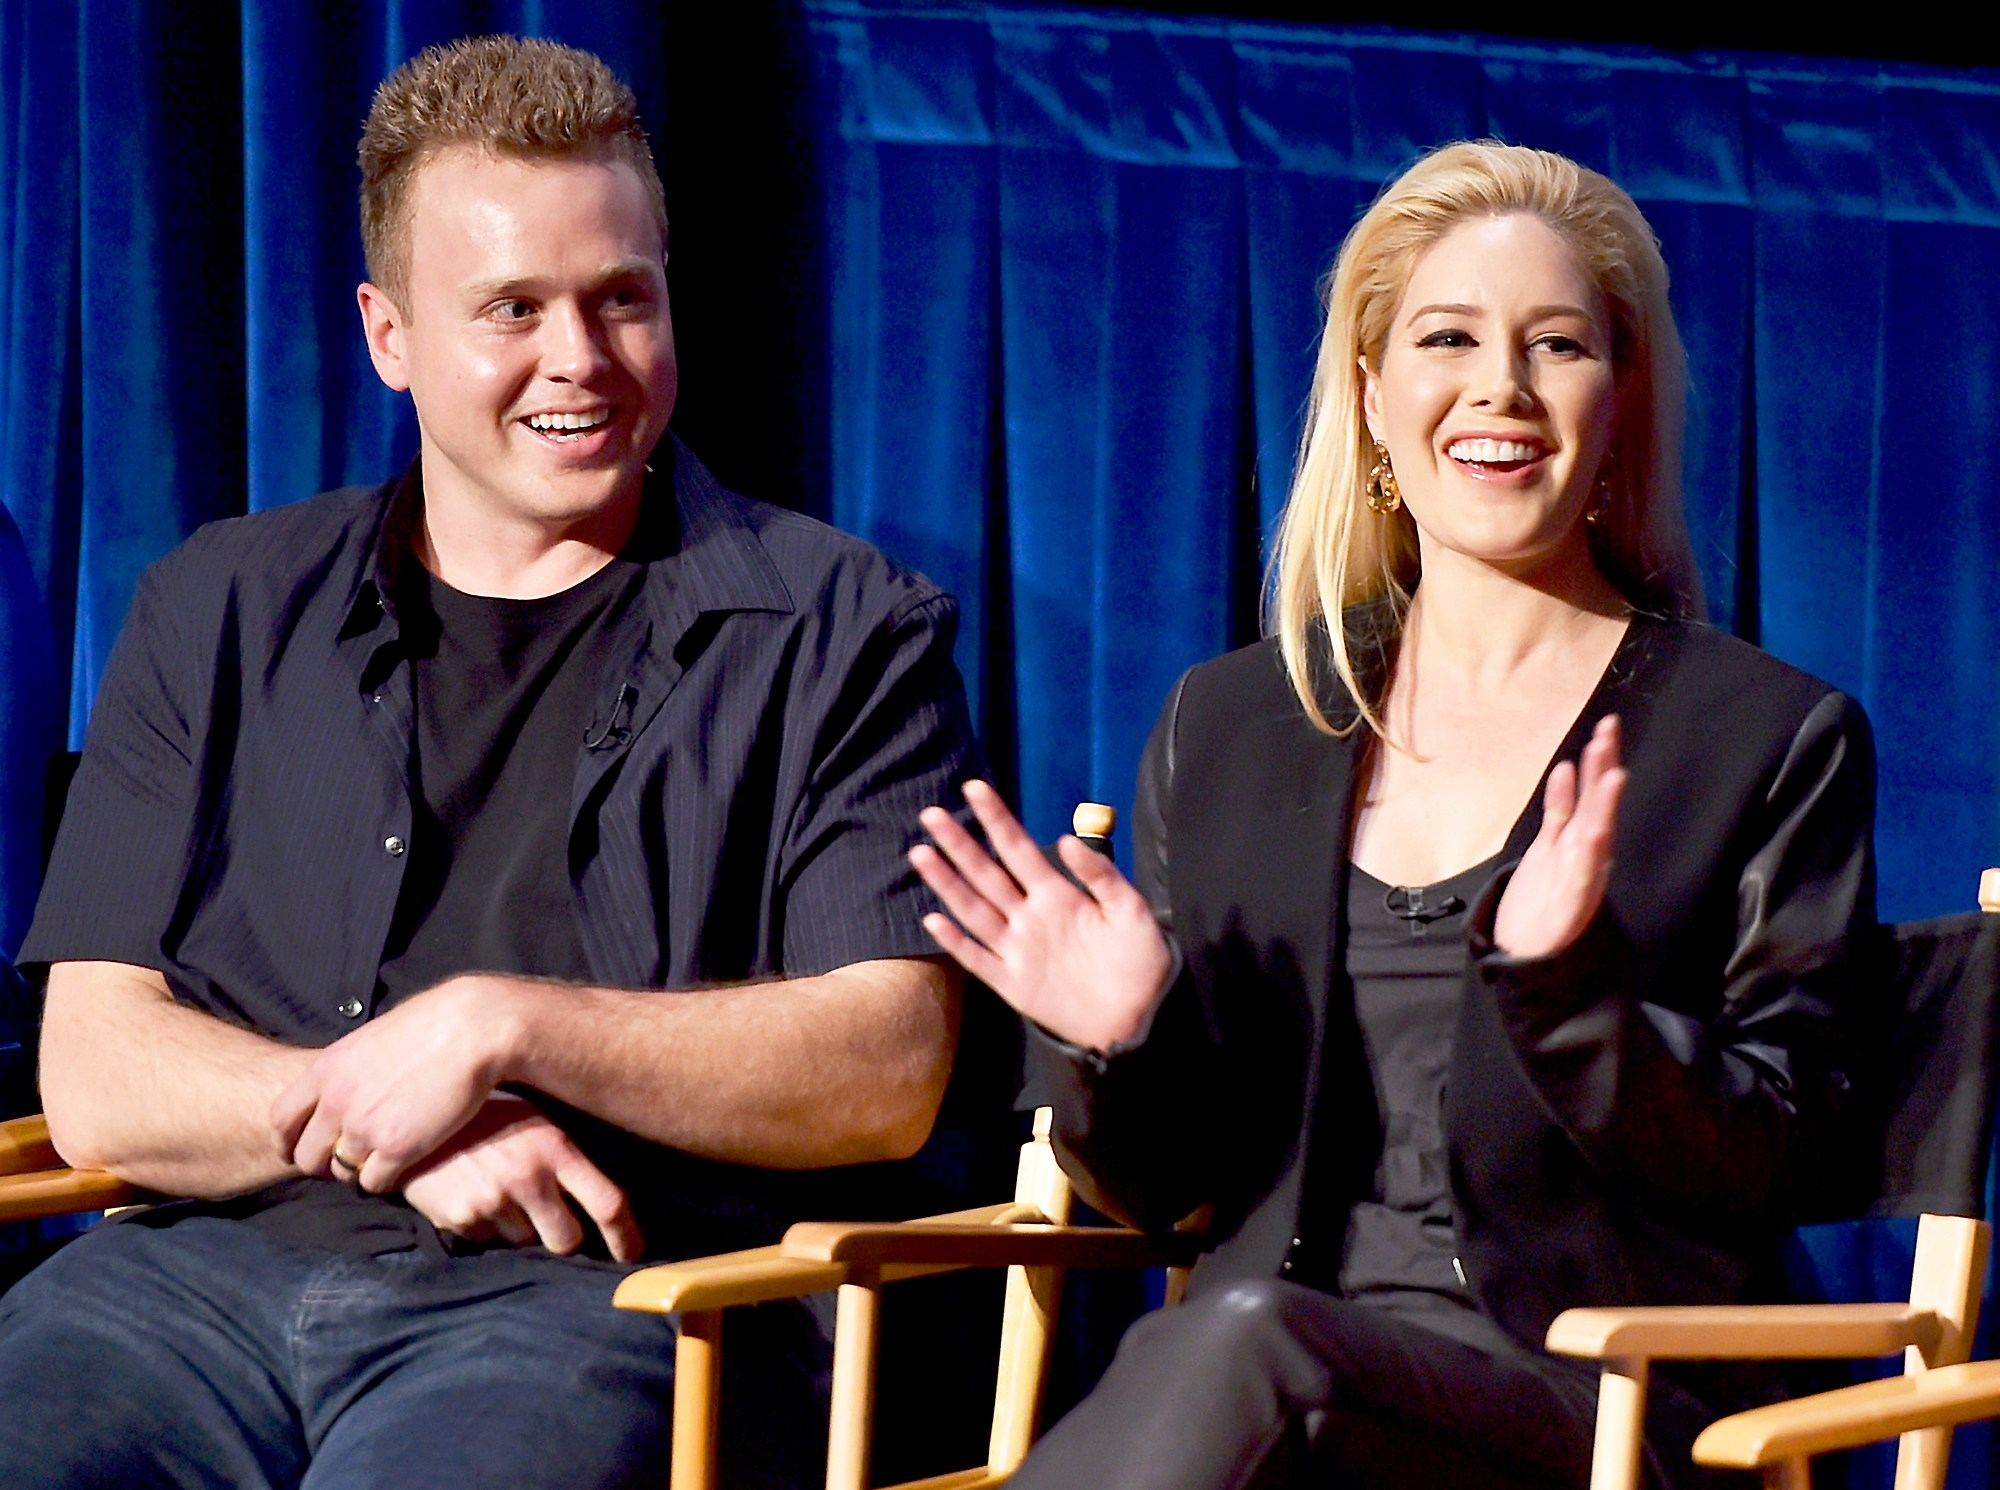 Spencer Pratt and Heidi Montag attend the WE tv presents The Evolution of The Relationship Reality Show at The Paley Center for Media on March 19, 2015 in Beverly Hills, California.